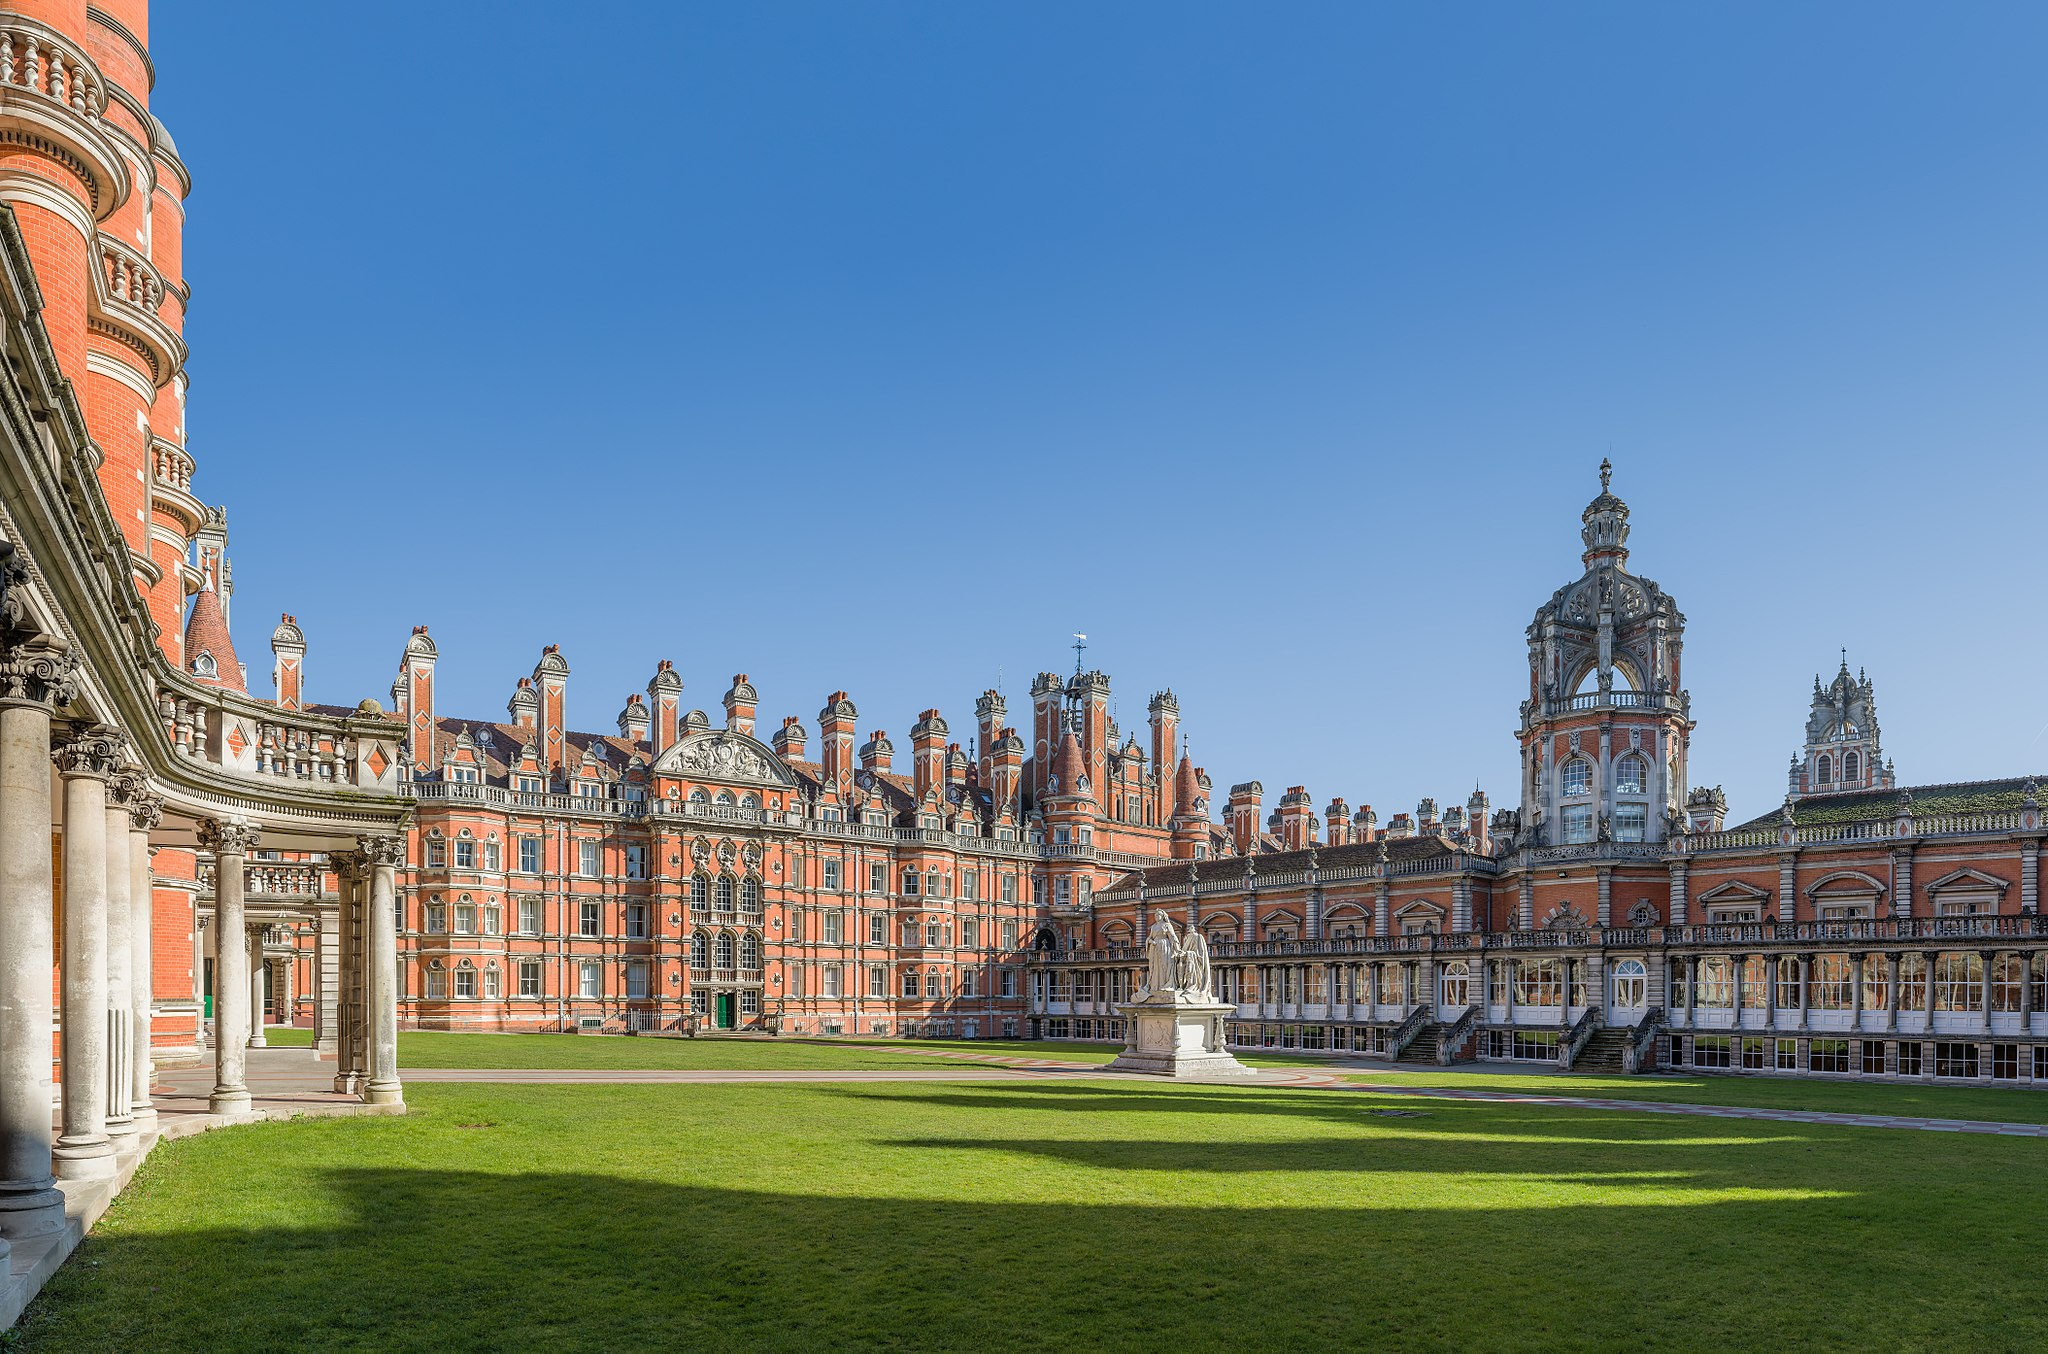 2048px-Founder's_Building,_Royal_Holloway,_University_of_London_-_Diliff